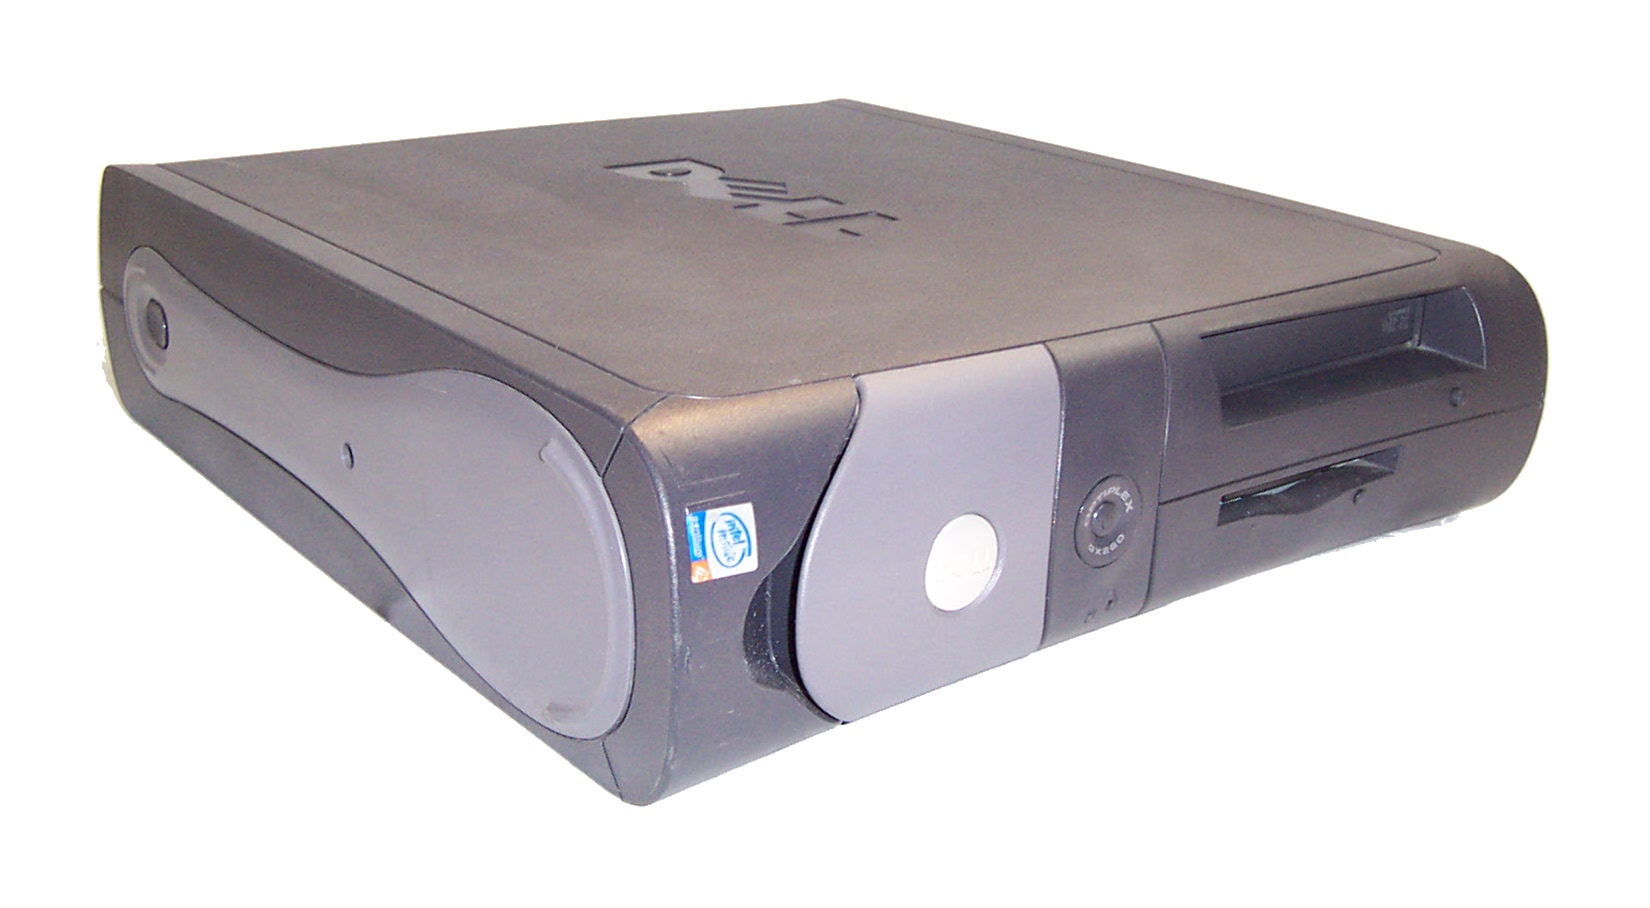 dell desktop pc how to tell which model